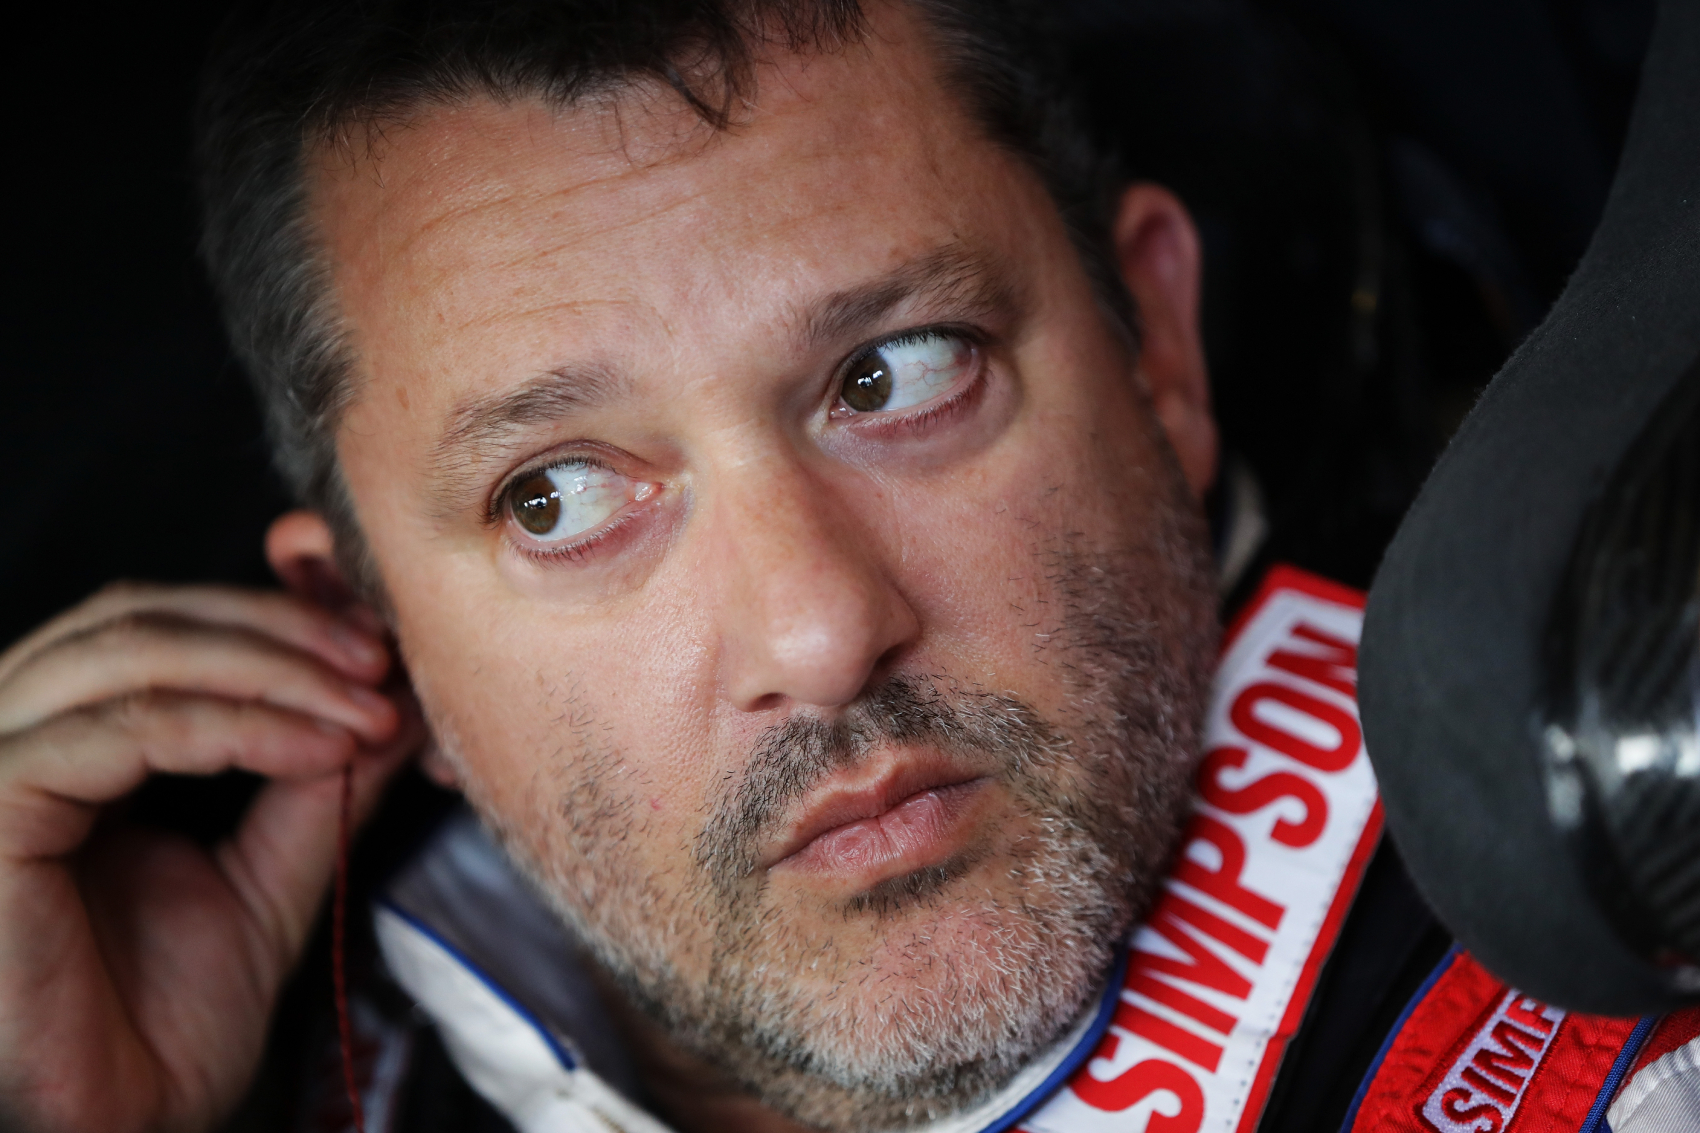 Tony Stewart is a NASCAR Hall of Famer and a legend in the racing world. However, NASCAR isn't too happy about his new racing venture.